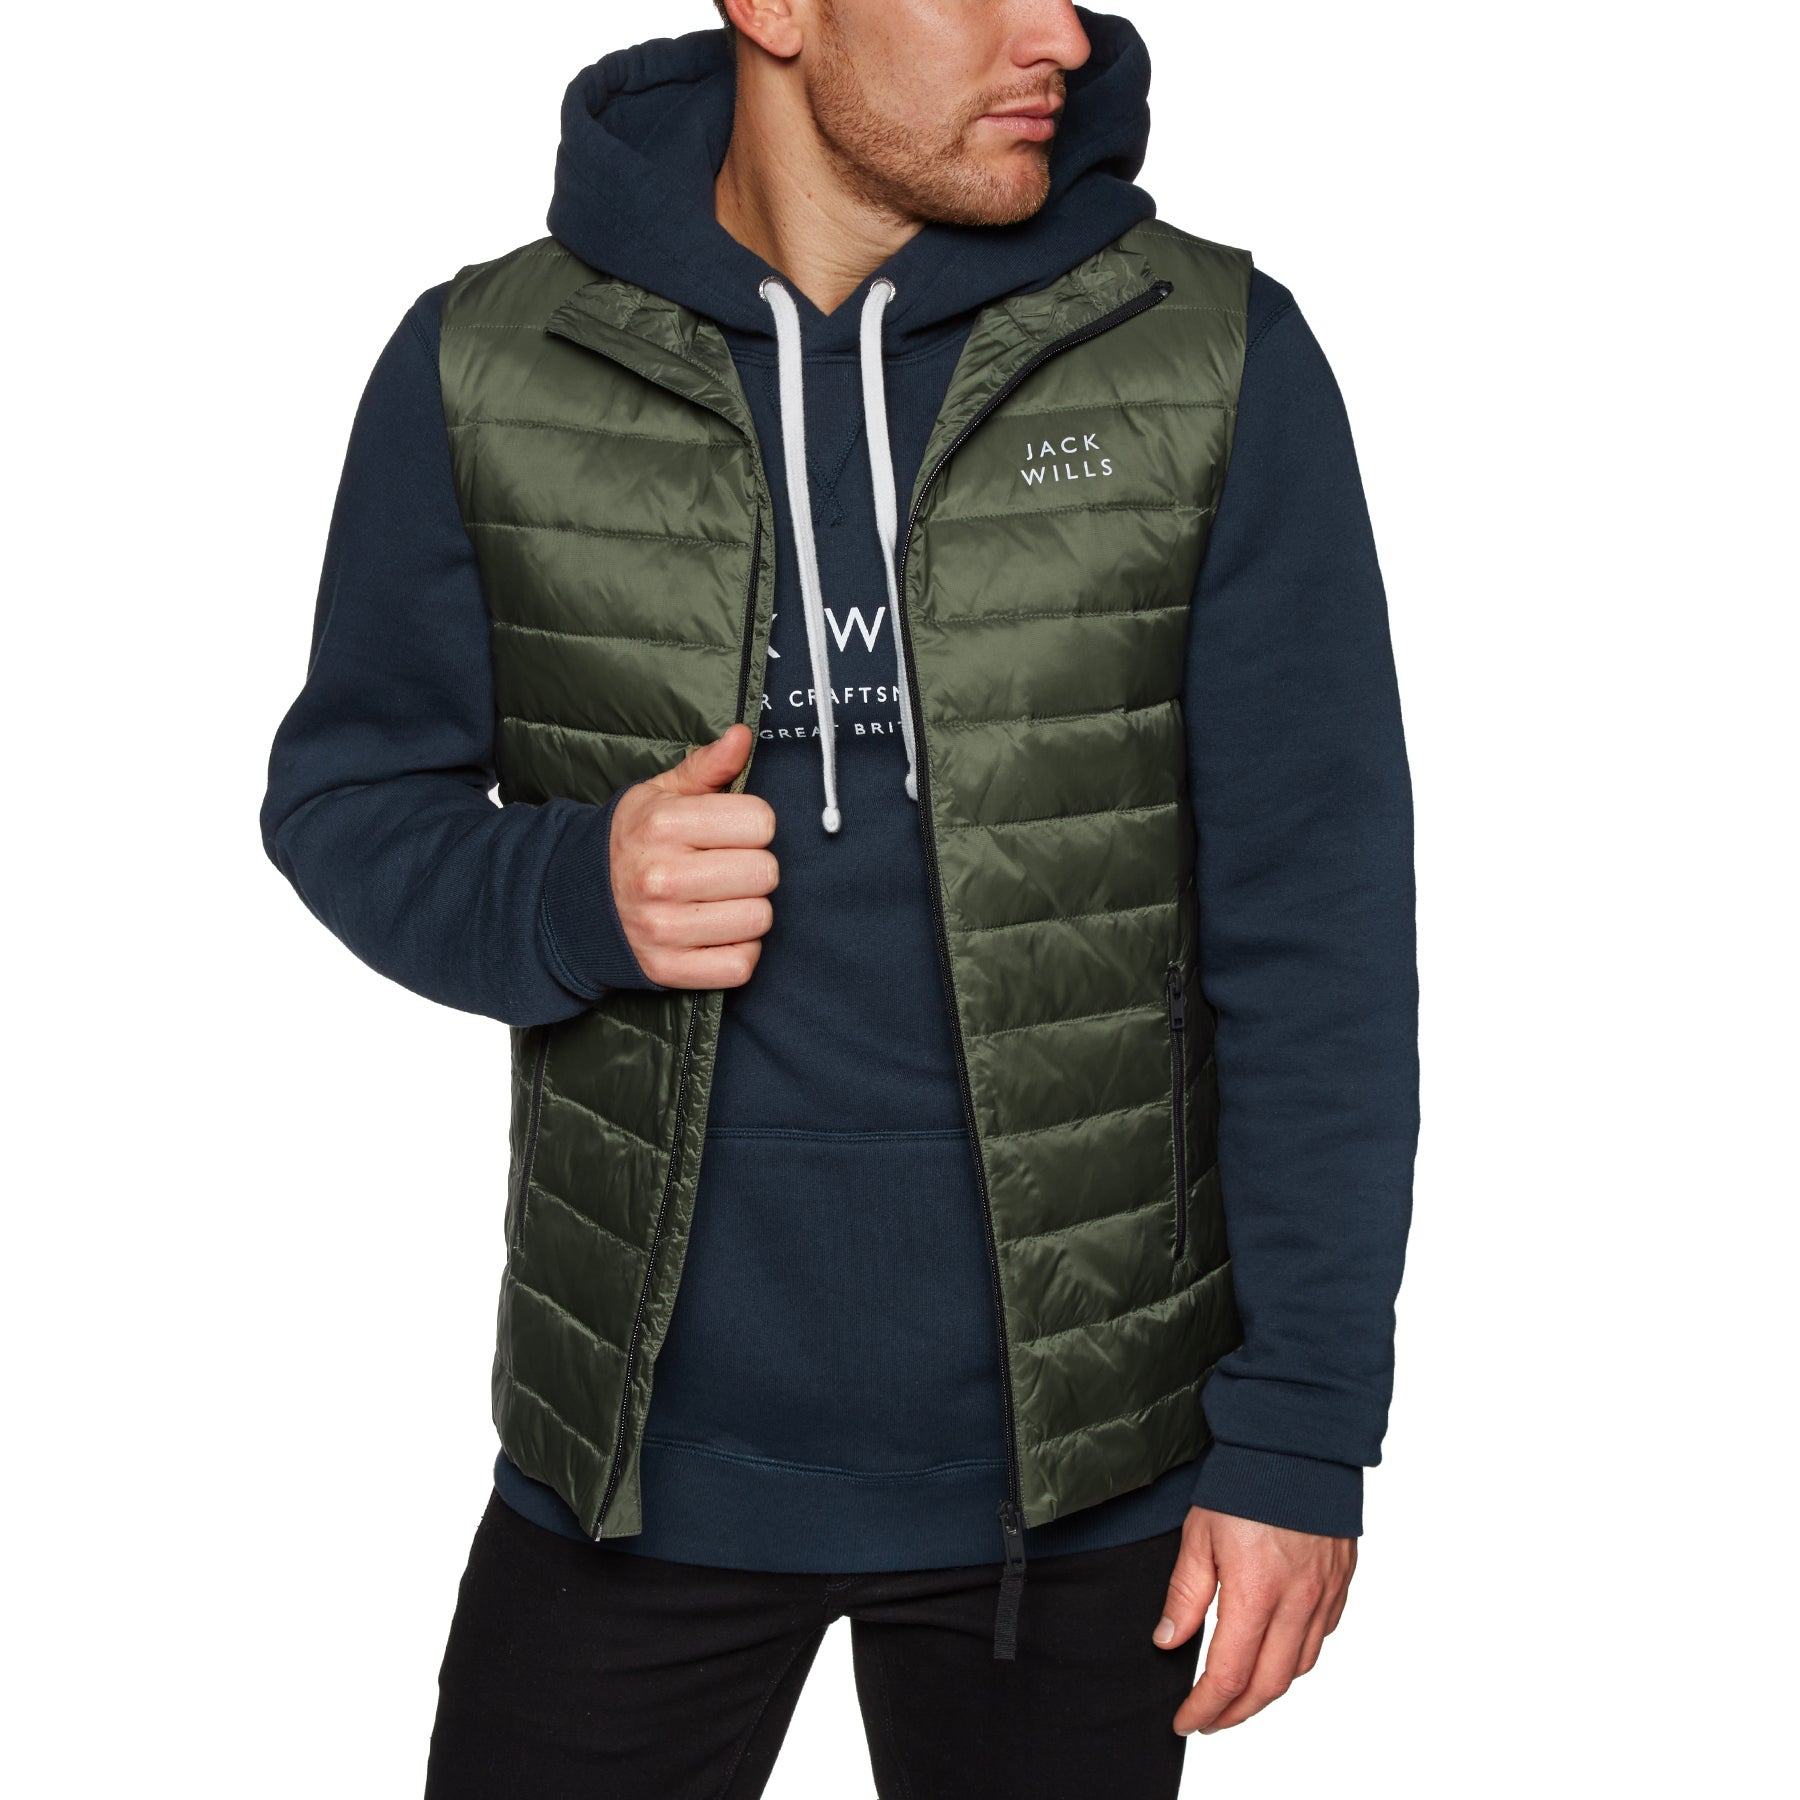 Jack Wills Knole Core Body Warmer - Olive